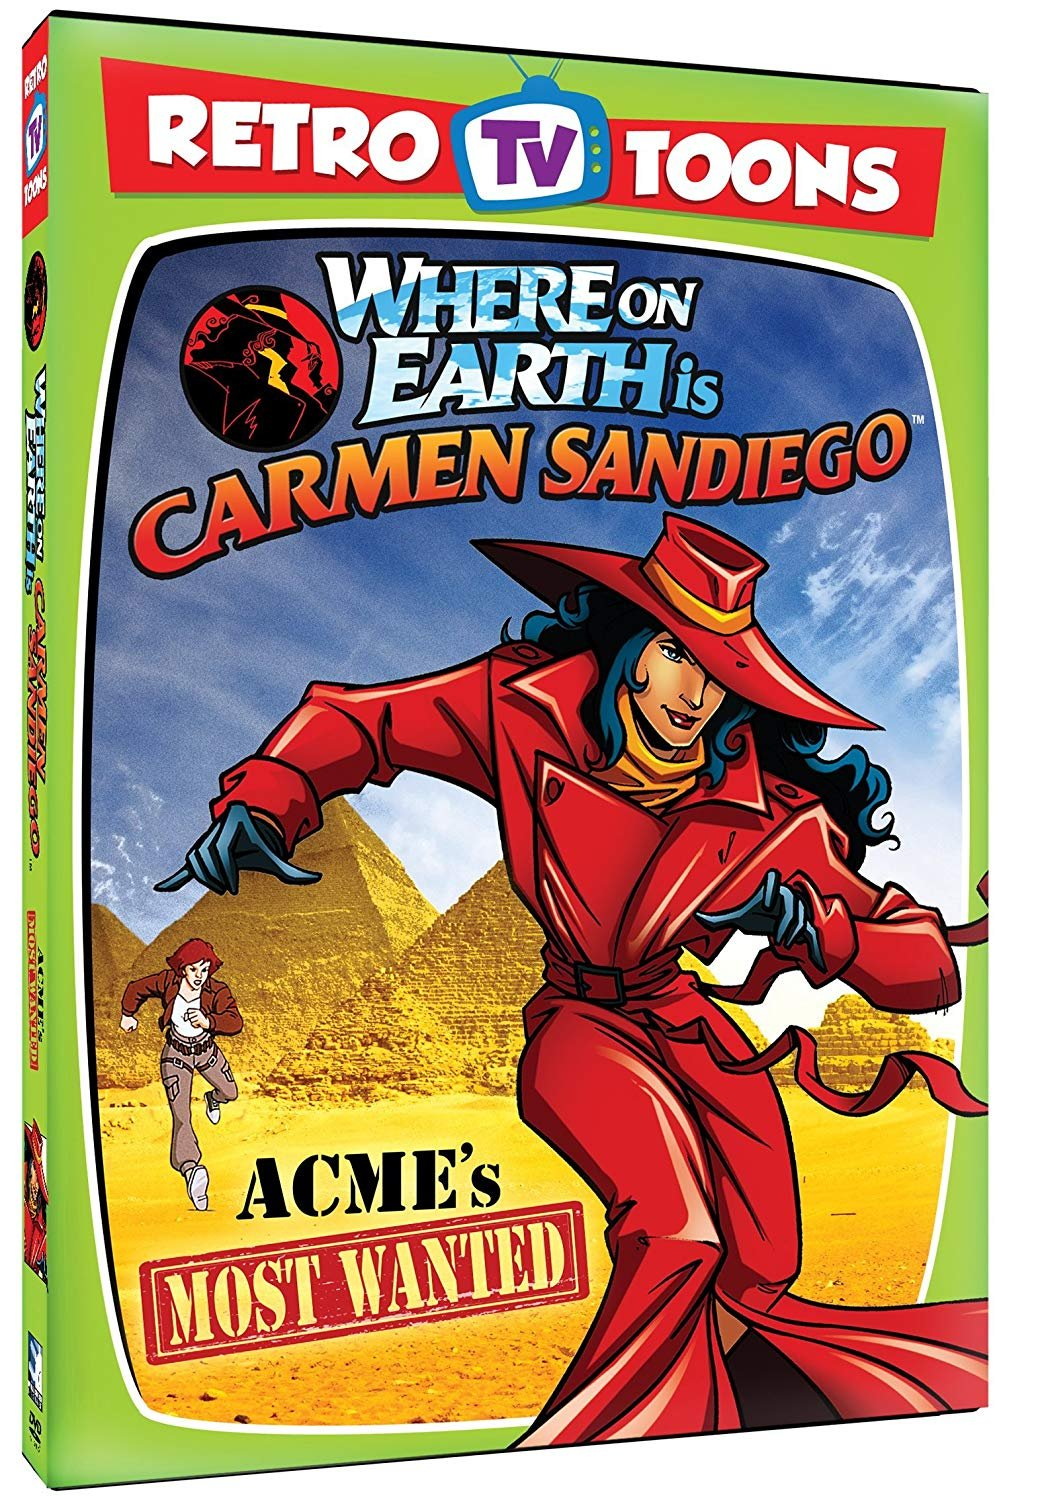 Retro TV Toons - Where on Earth is Carmen Sandiego - ACME's Most Wanted(DVD) (dv001)